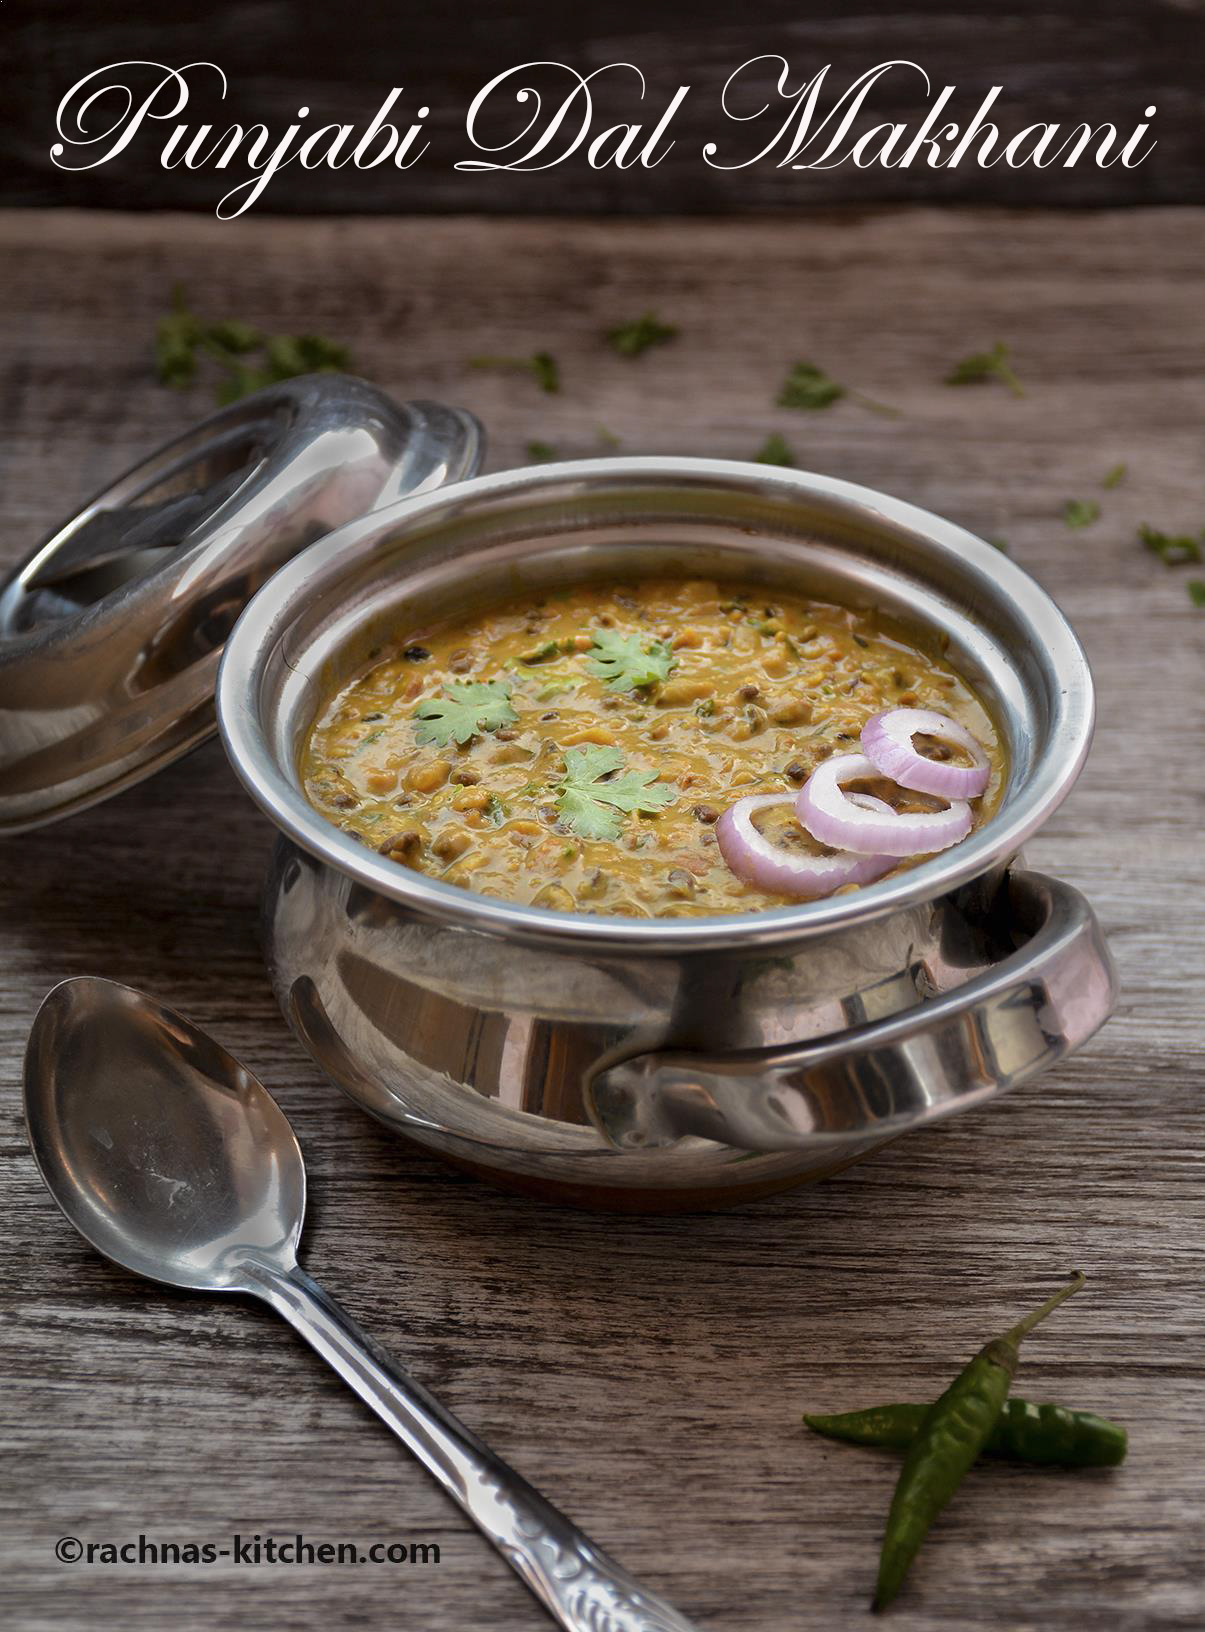 Punjabi dal makhani recipe how to make makhani dal punjabi dal makhani recipe forumfinder Image collections